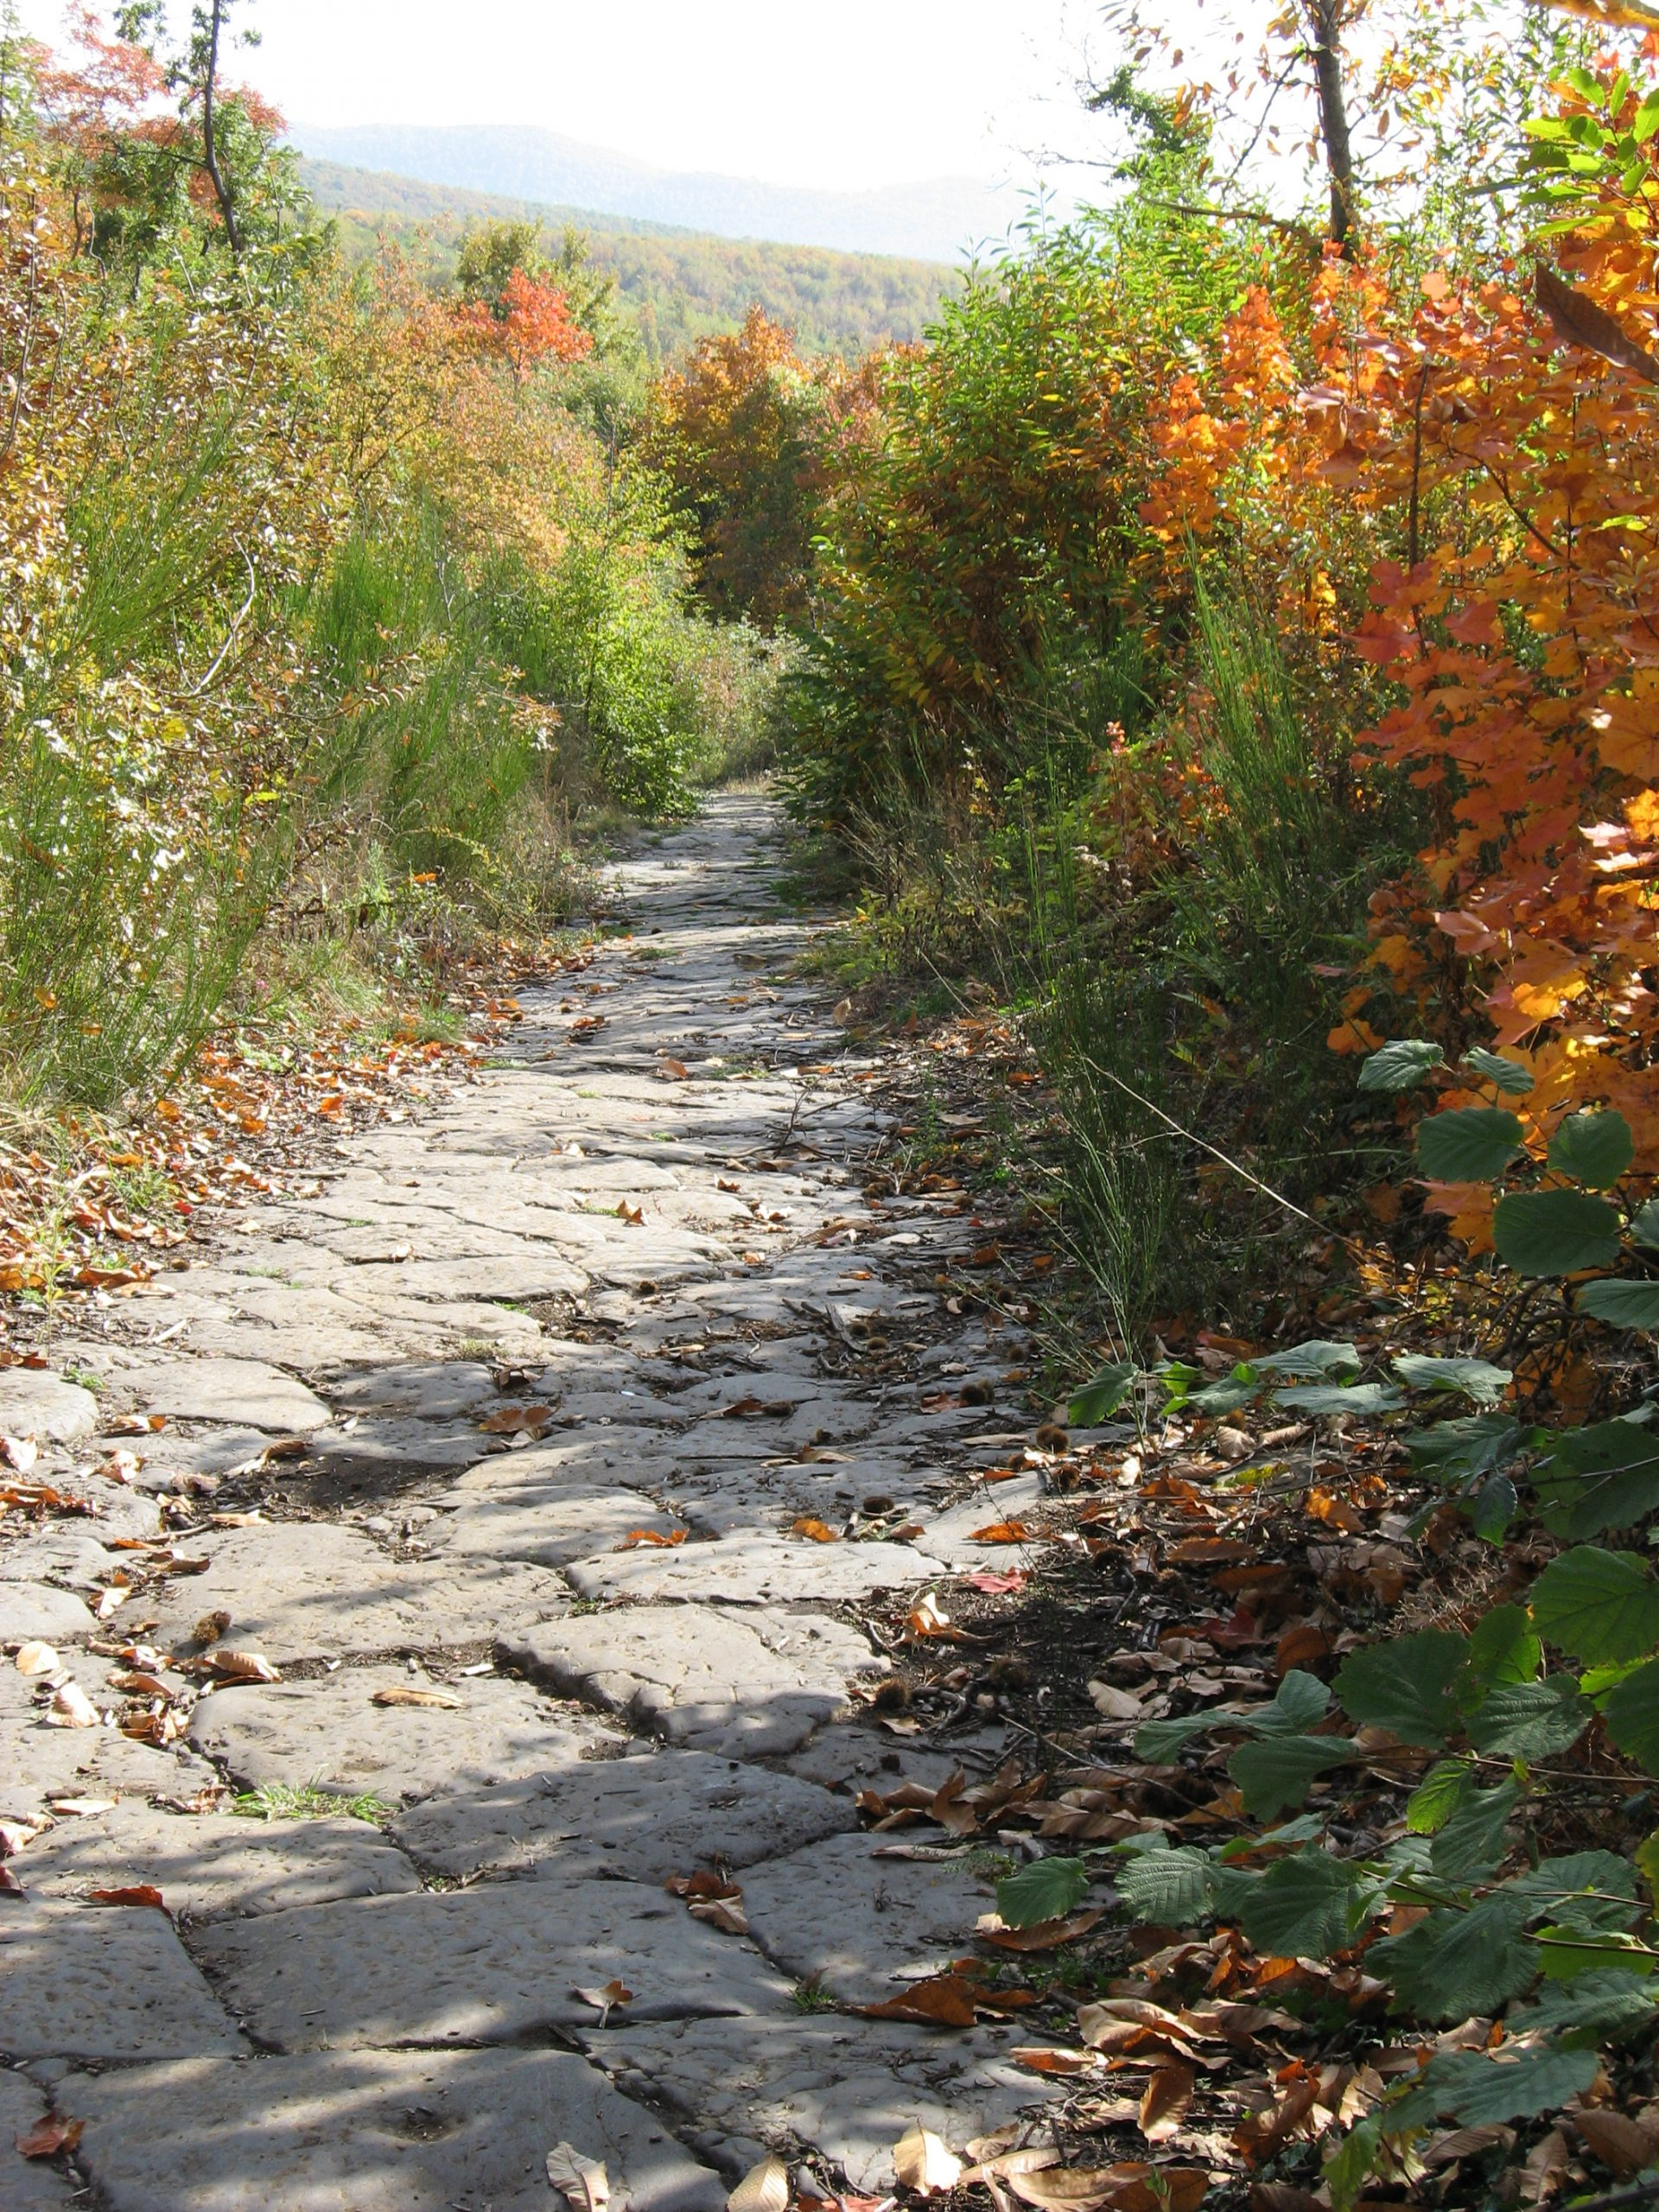 the via triumphalis, an ancient Roman road, that goes up Monte Cavo in the Castelli Romani